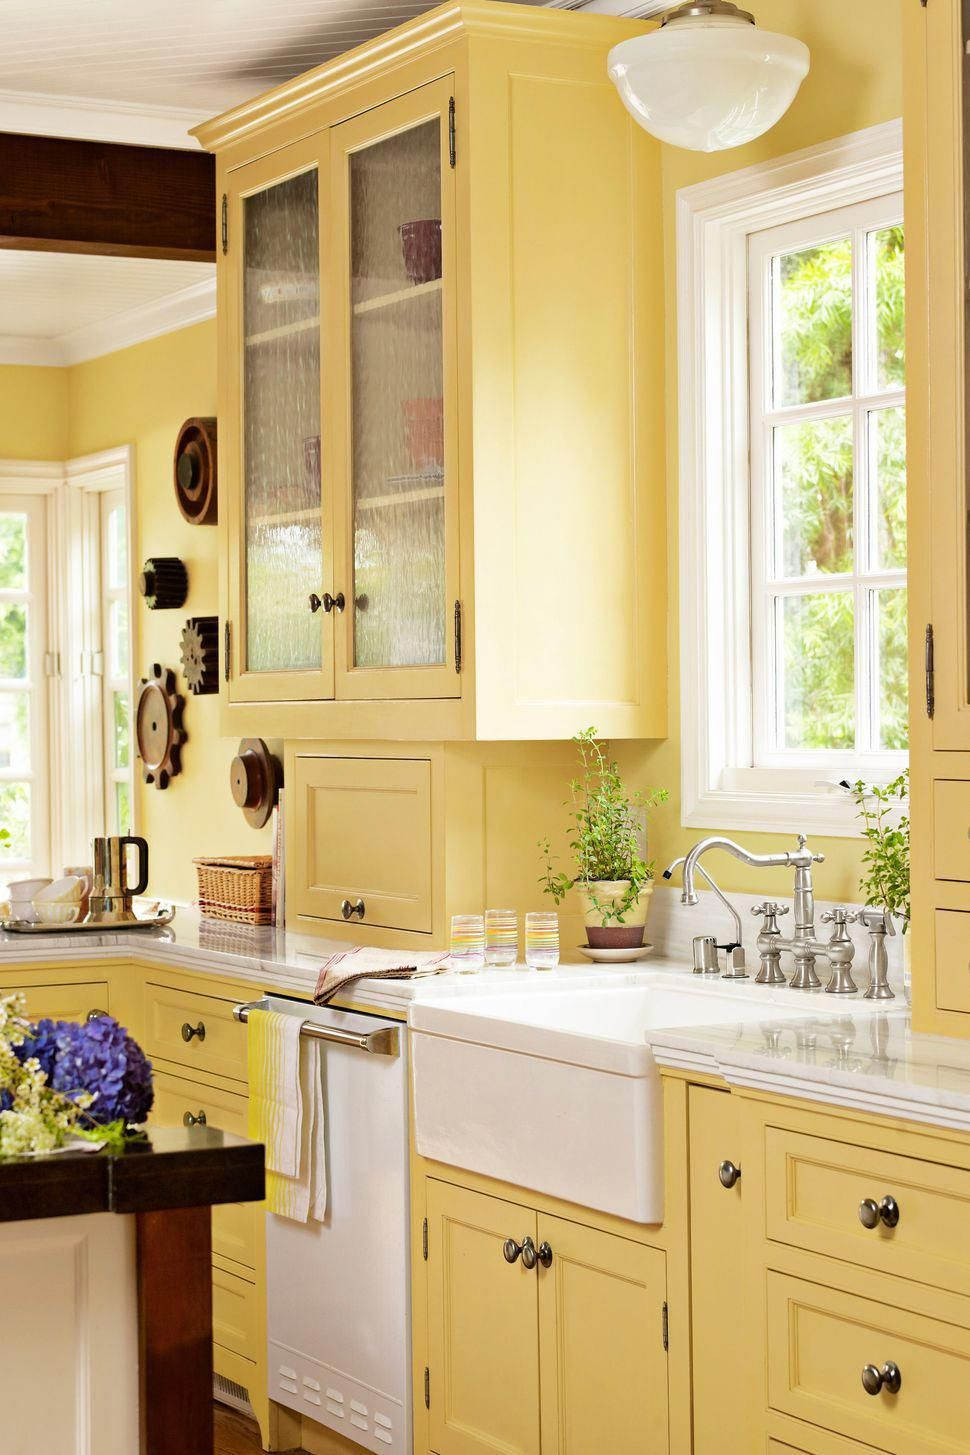 26 Paint Colors That Will Transform Your Kitchen Kitchen Cabinets Decor Yellow Kitchen Designs Yellow Kitchen Cabinets